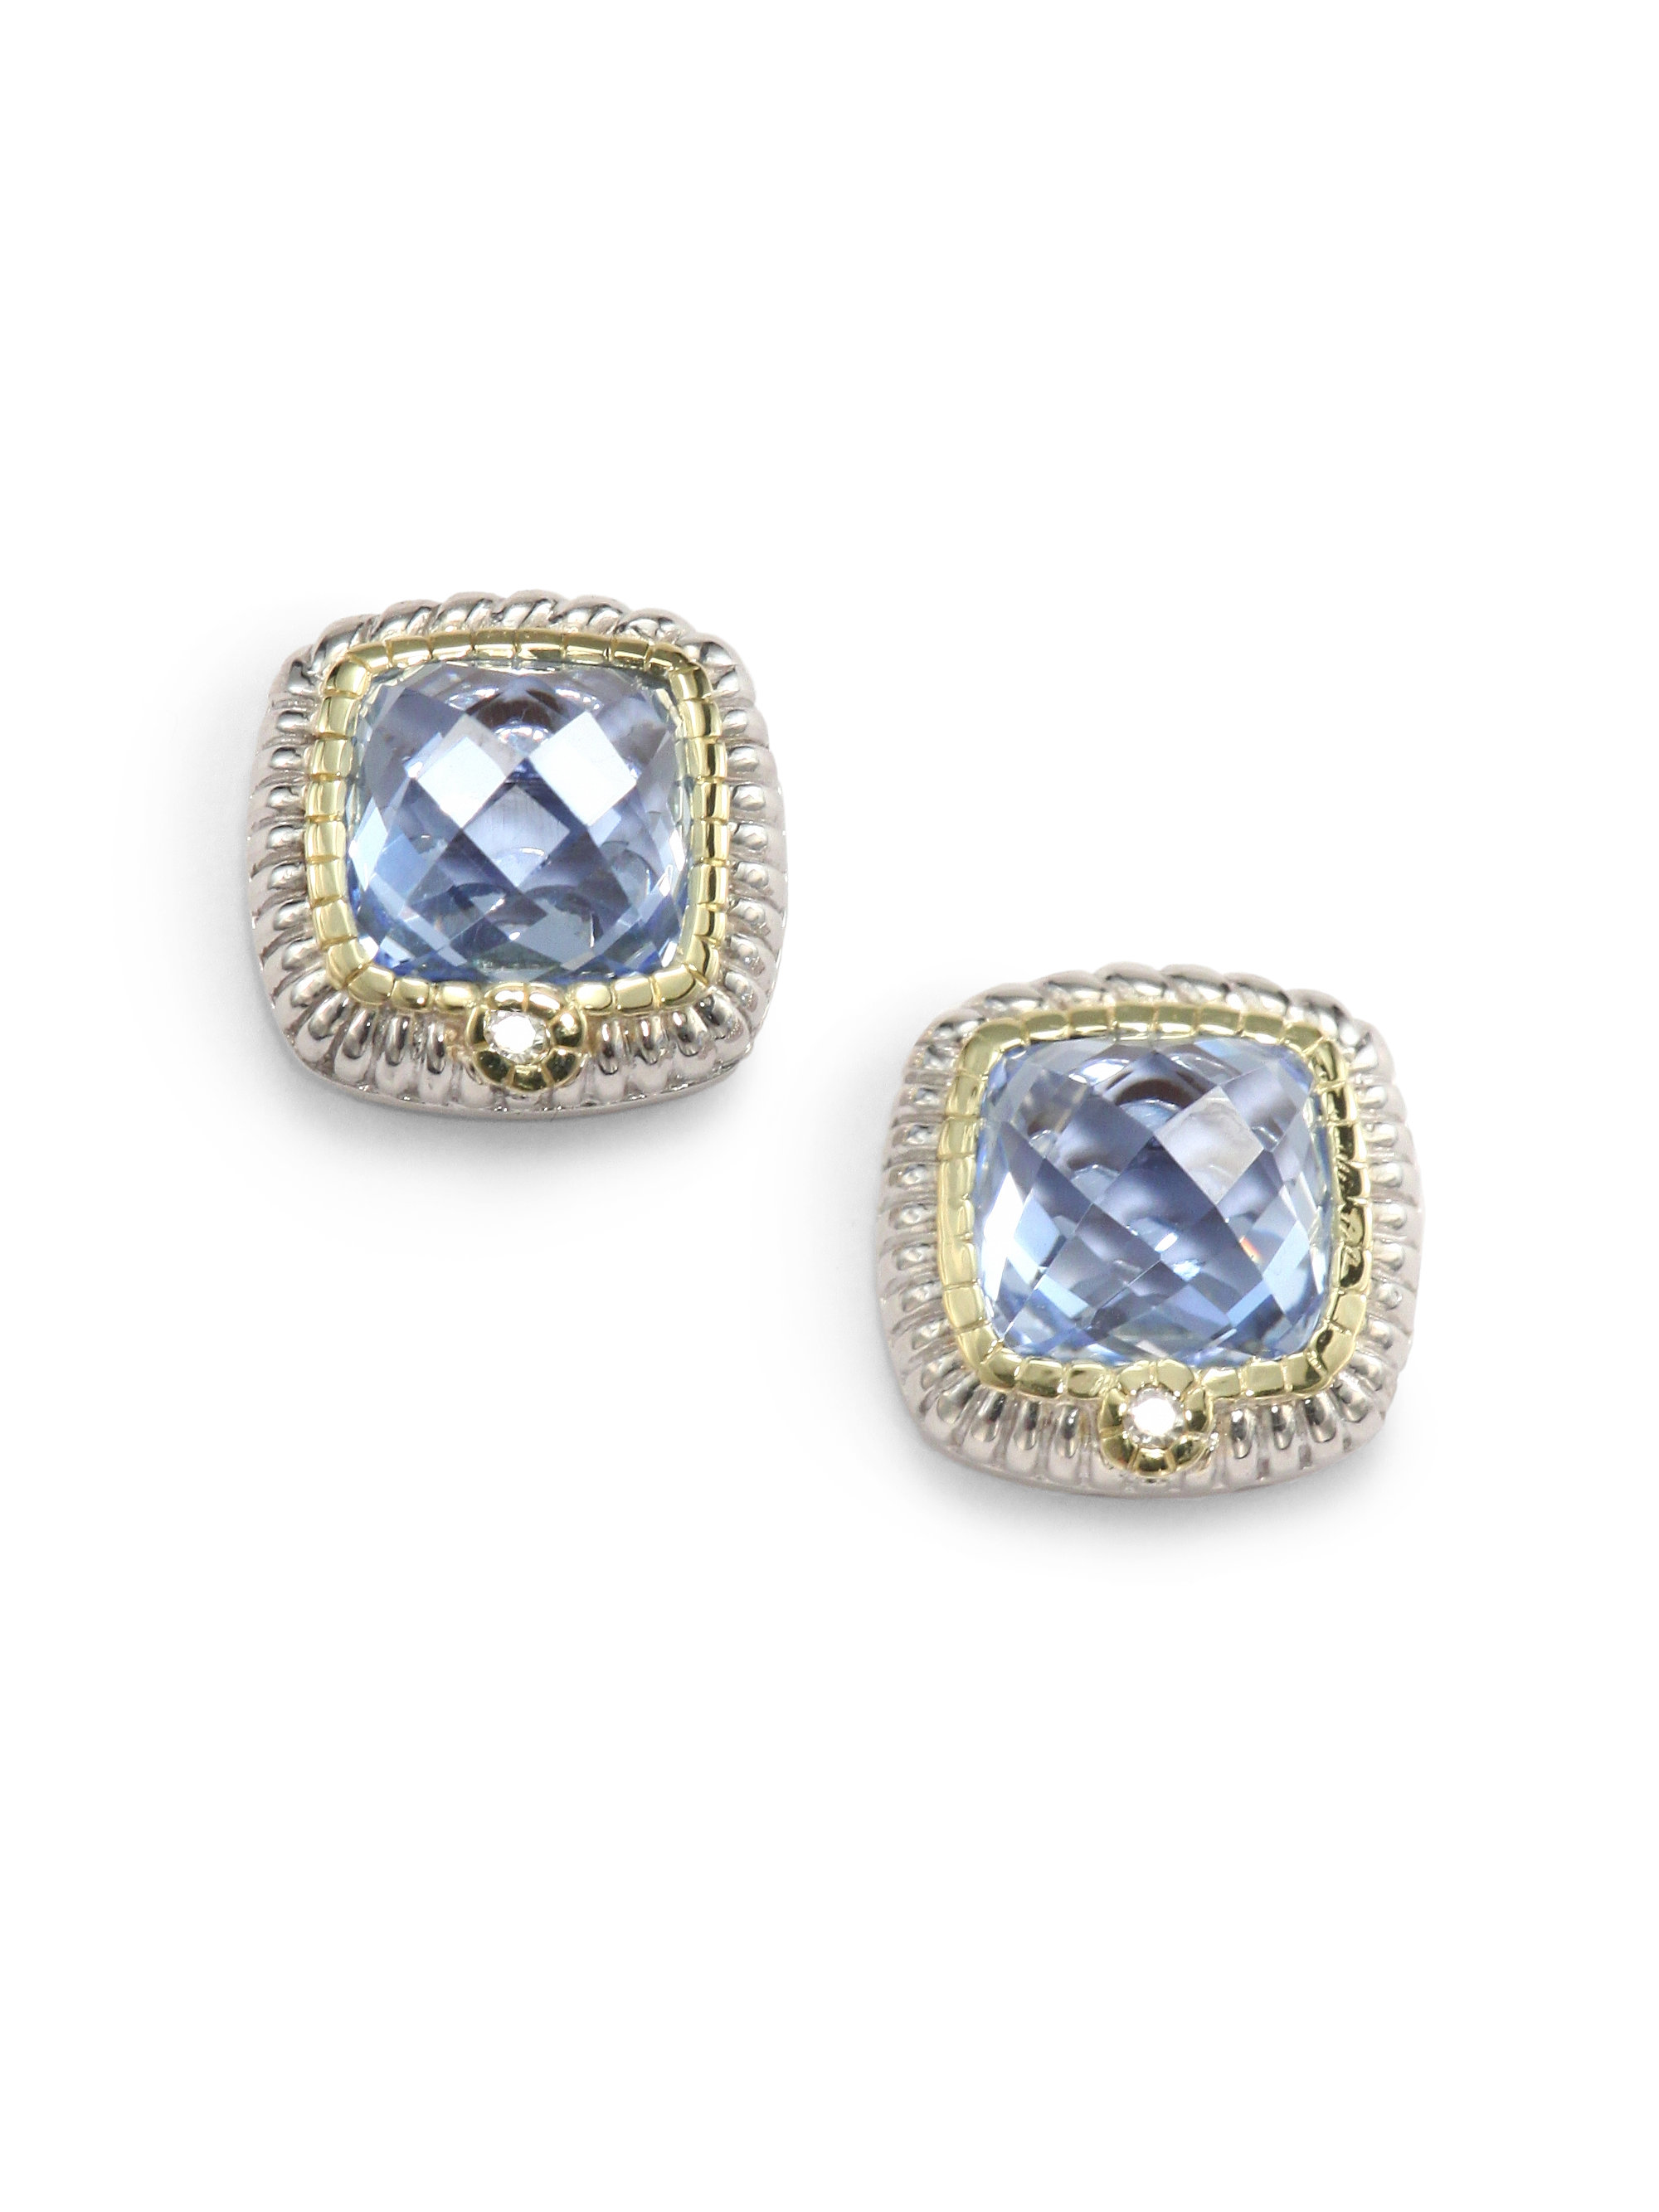 a gold earrings vs every will h ctw diamond sing bygxkfe make called in round heart white beauty womens stud blue